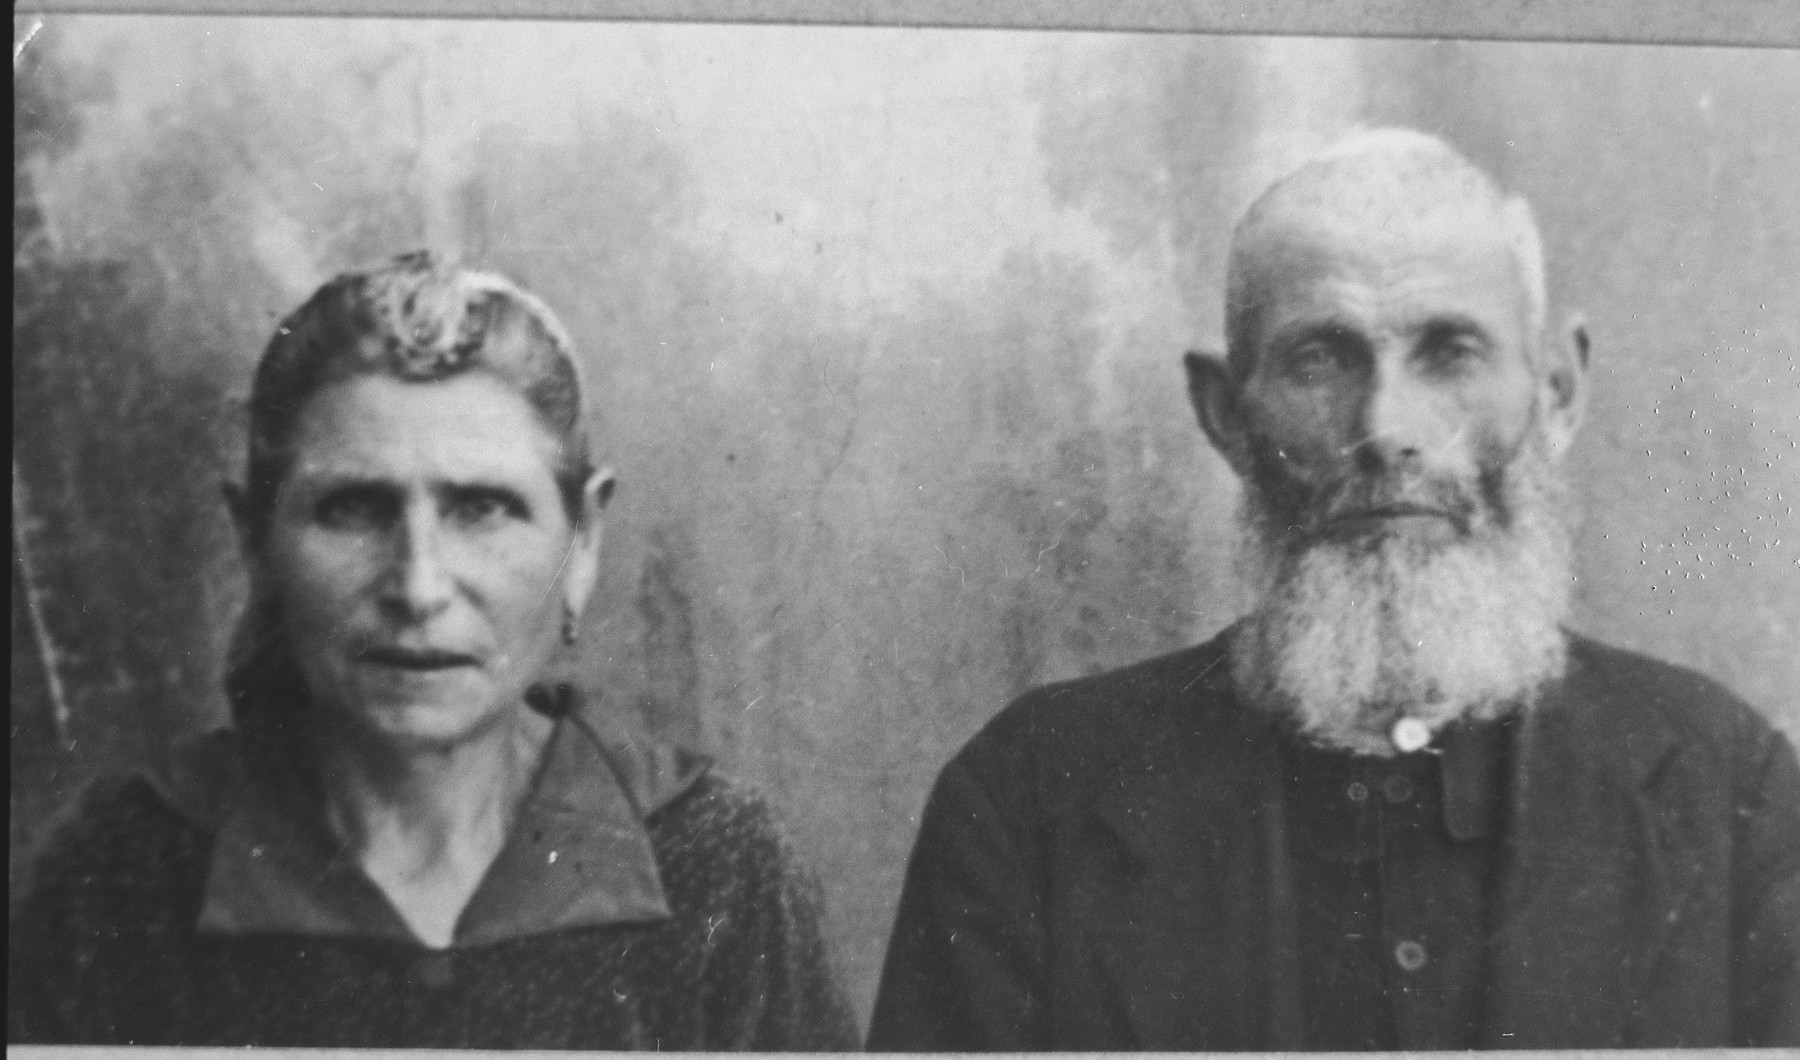 Portrait of Yanto Pesso and his wife, Ester.  Yanto was a second-hand dealer.  They lived at Herzegovatska 30 in Bitola.